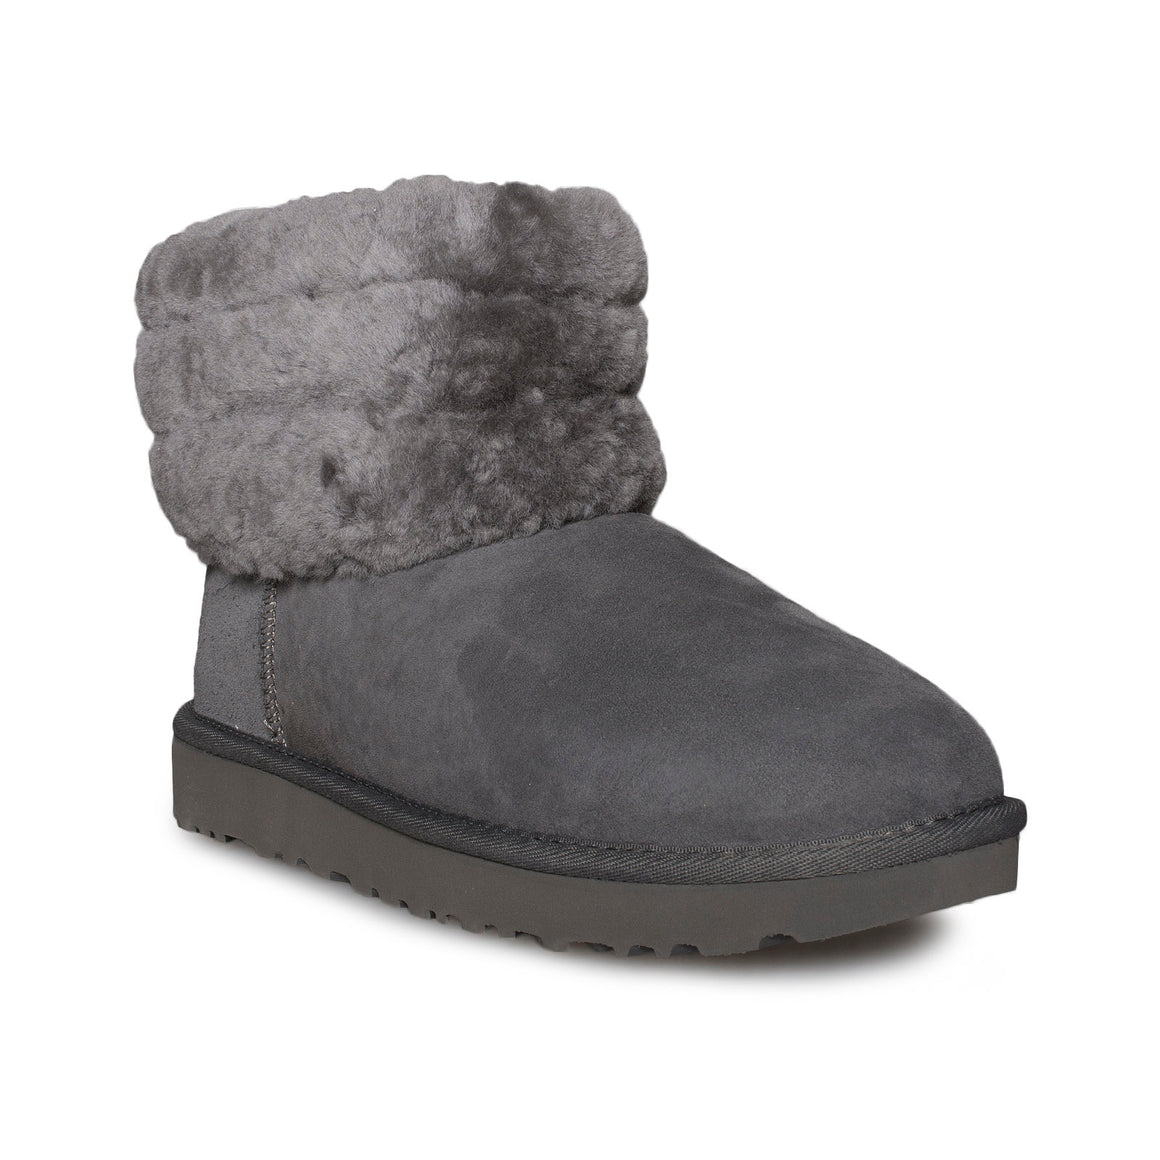 UGG Fluff Mini Quilted Charcoal boots - Women's